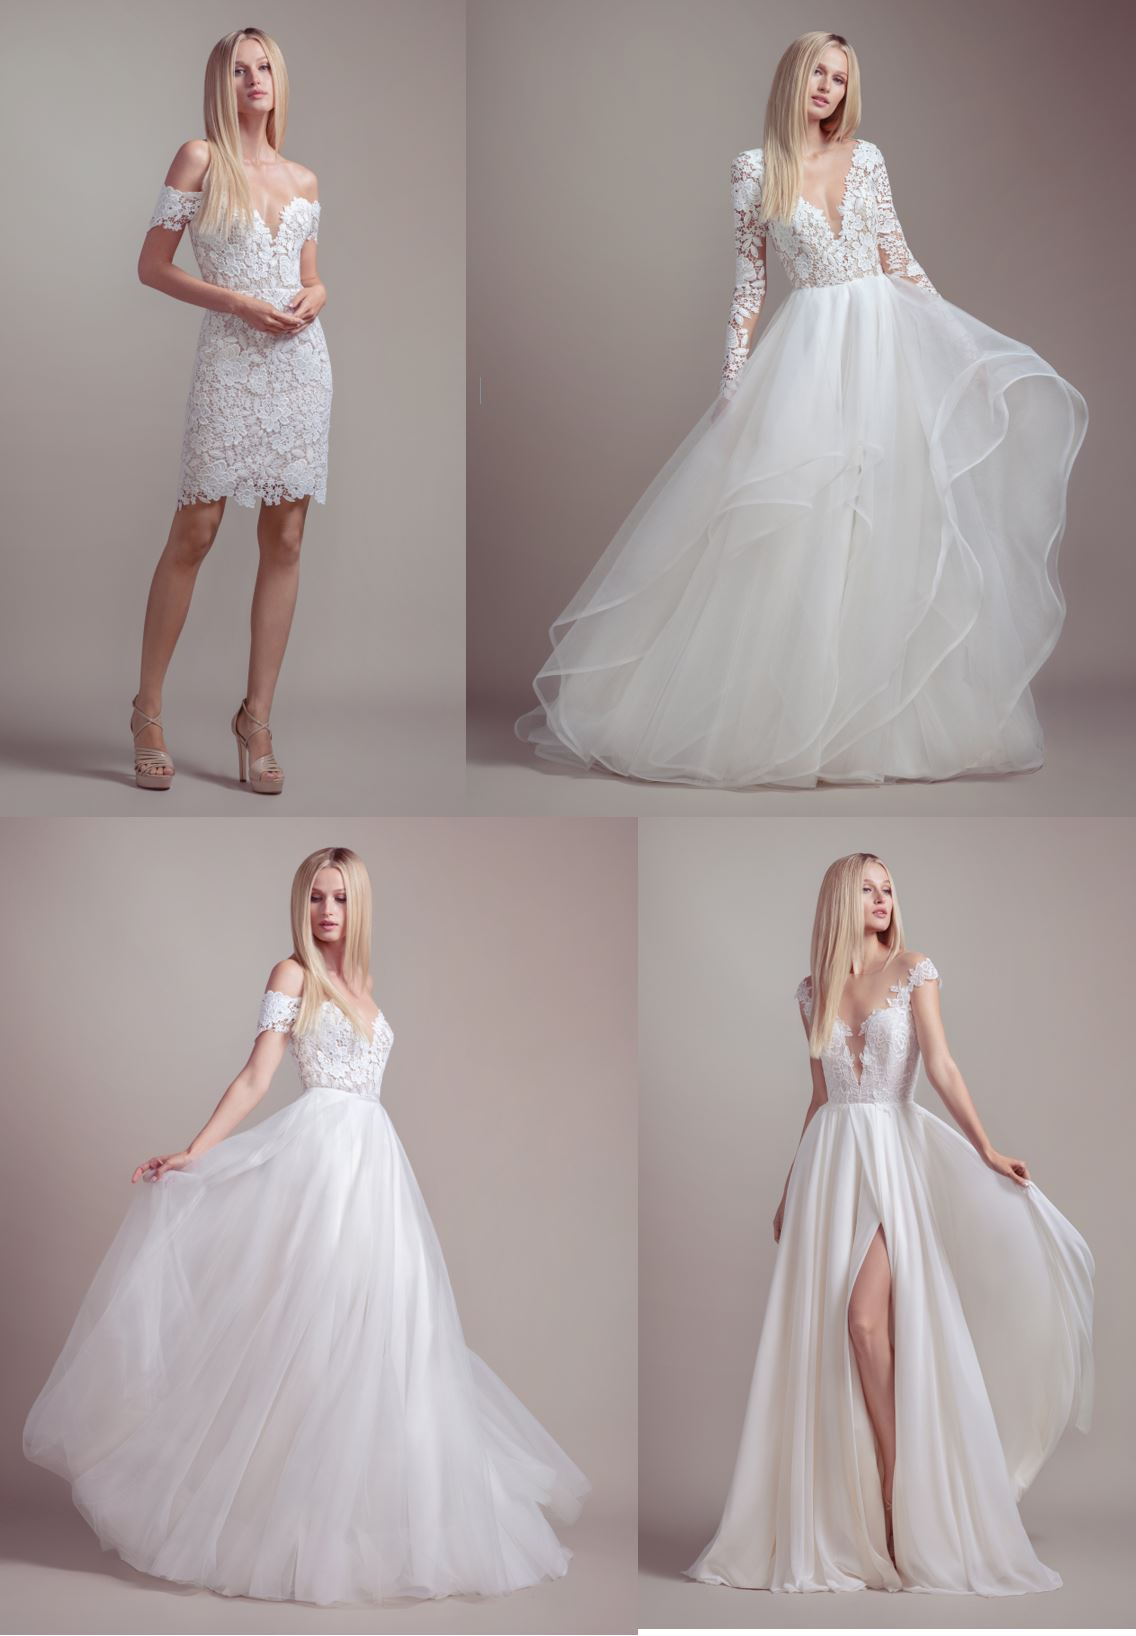 Blush by Hayley Paige Bridal Trunk Show from July 12th to 13th at Lotus Bridal Long Island, NY - Wedding Dresses Include Praise, Jojo, Charm, Atlas, Drai and Phoenix